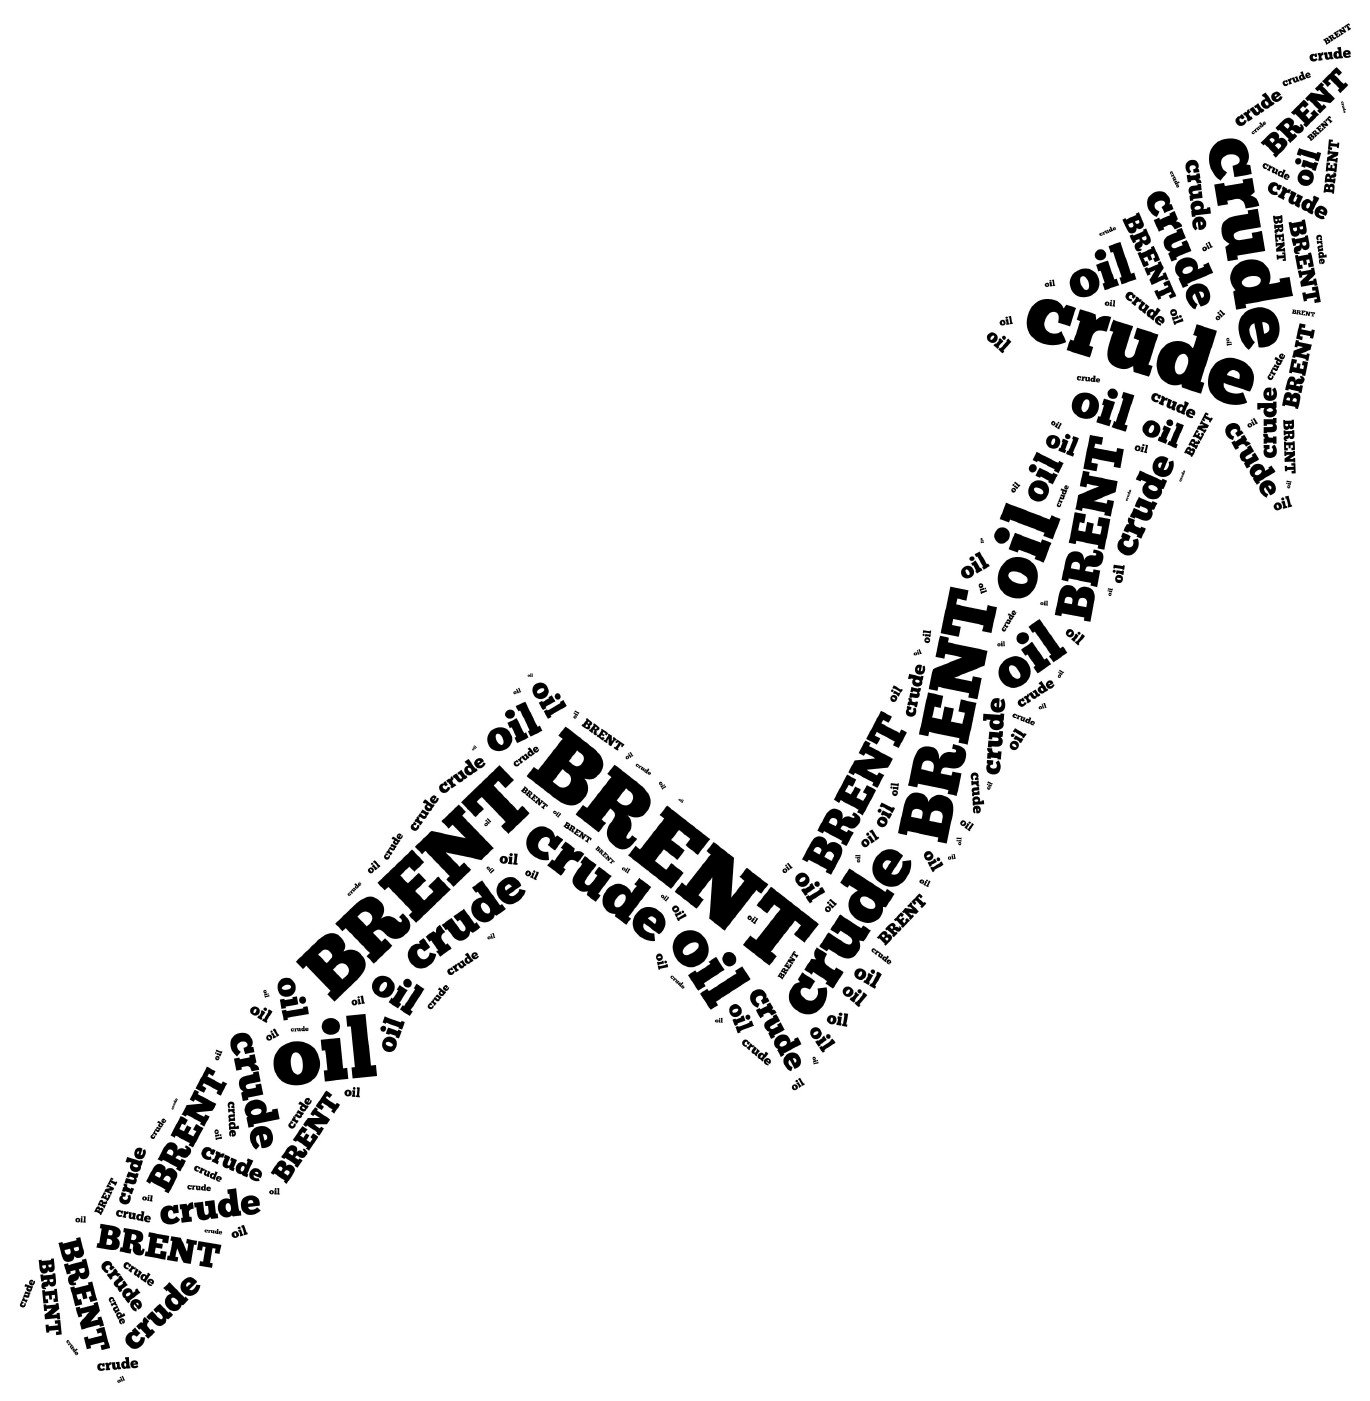 Brent crude oil commodity price growth. Word cloud illustration